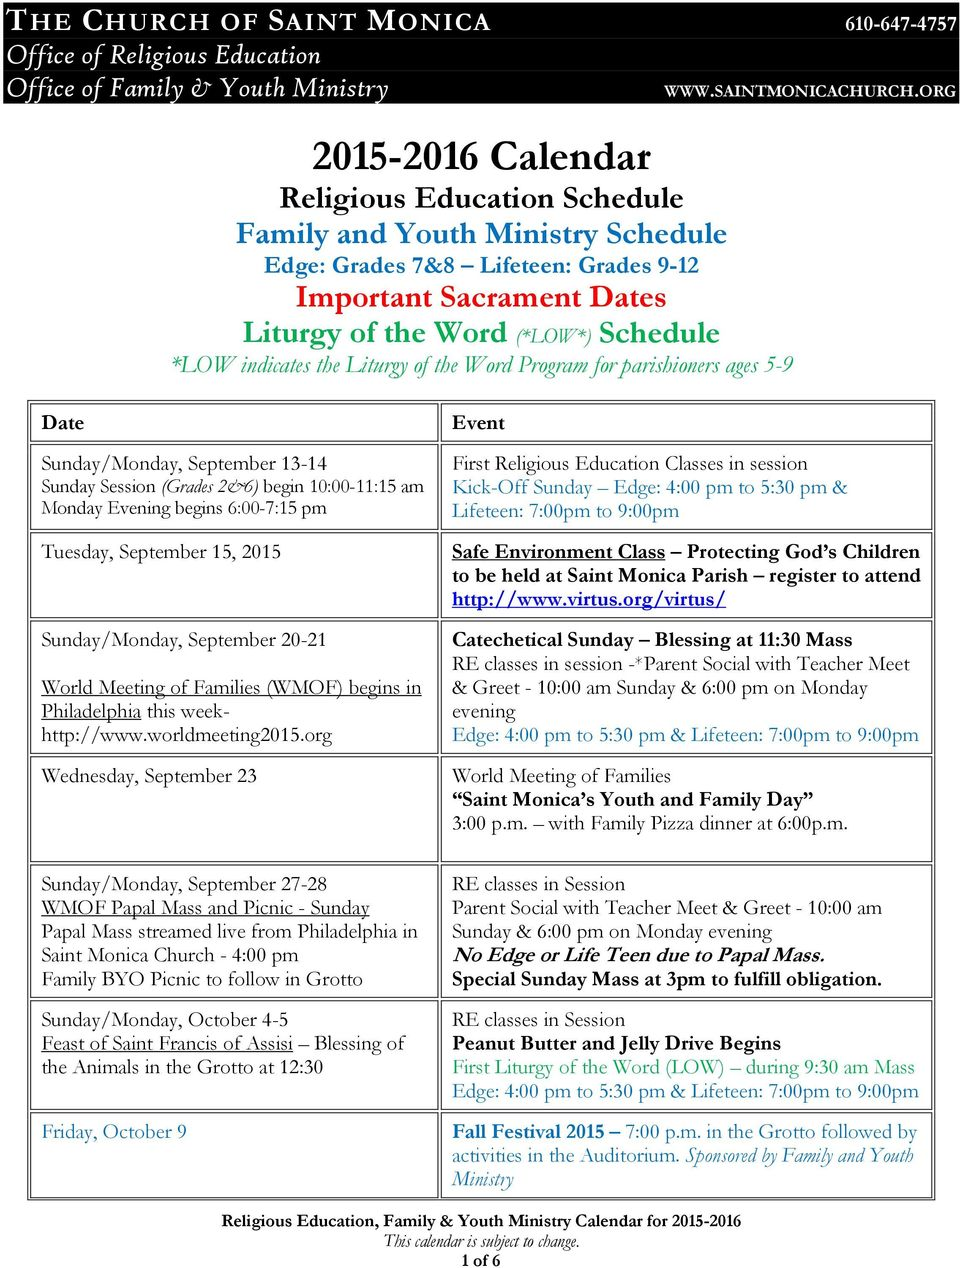 15, 2015 Sunday/Monday, September 20-21 World Meeting of Families (WMOF) begins in Philadelphia this weekhttp://www.worldmeeting2015.